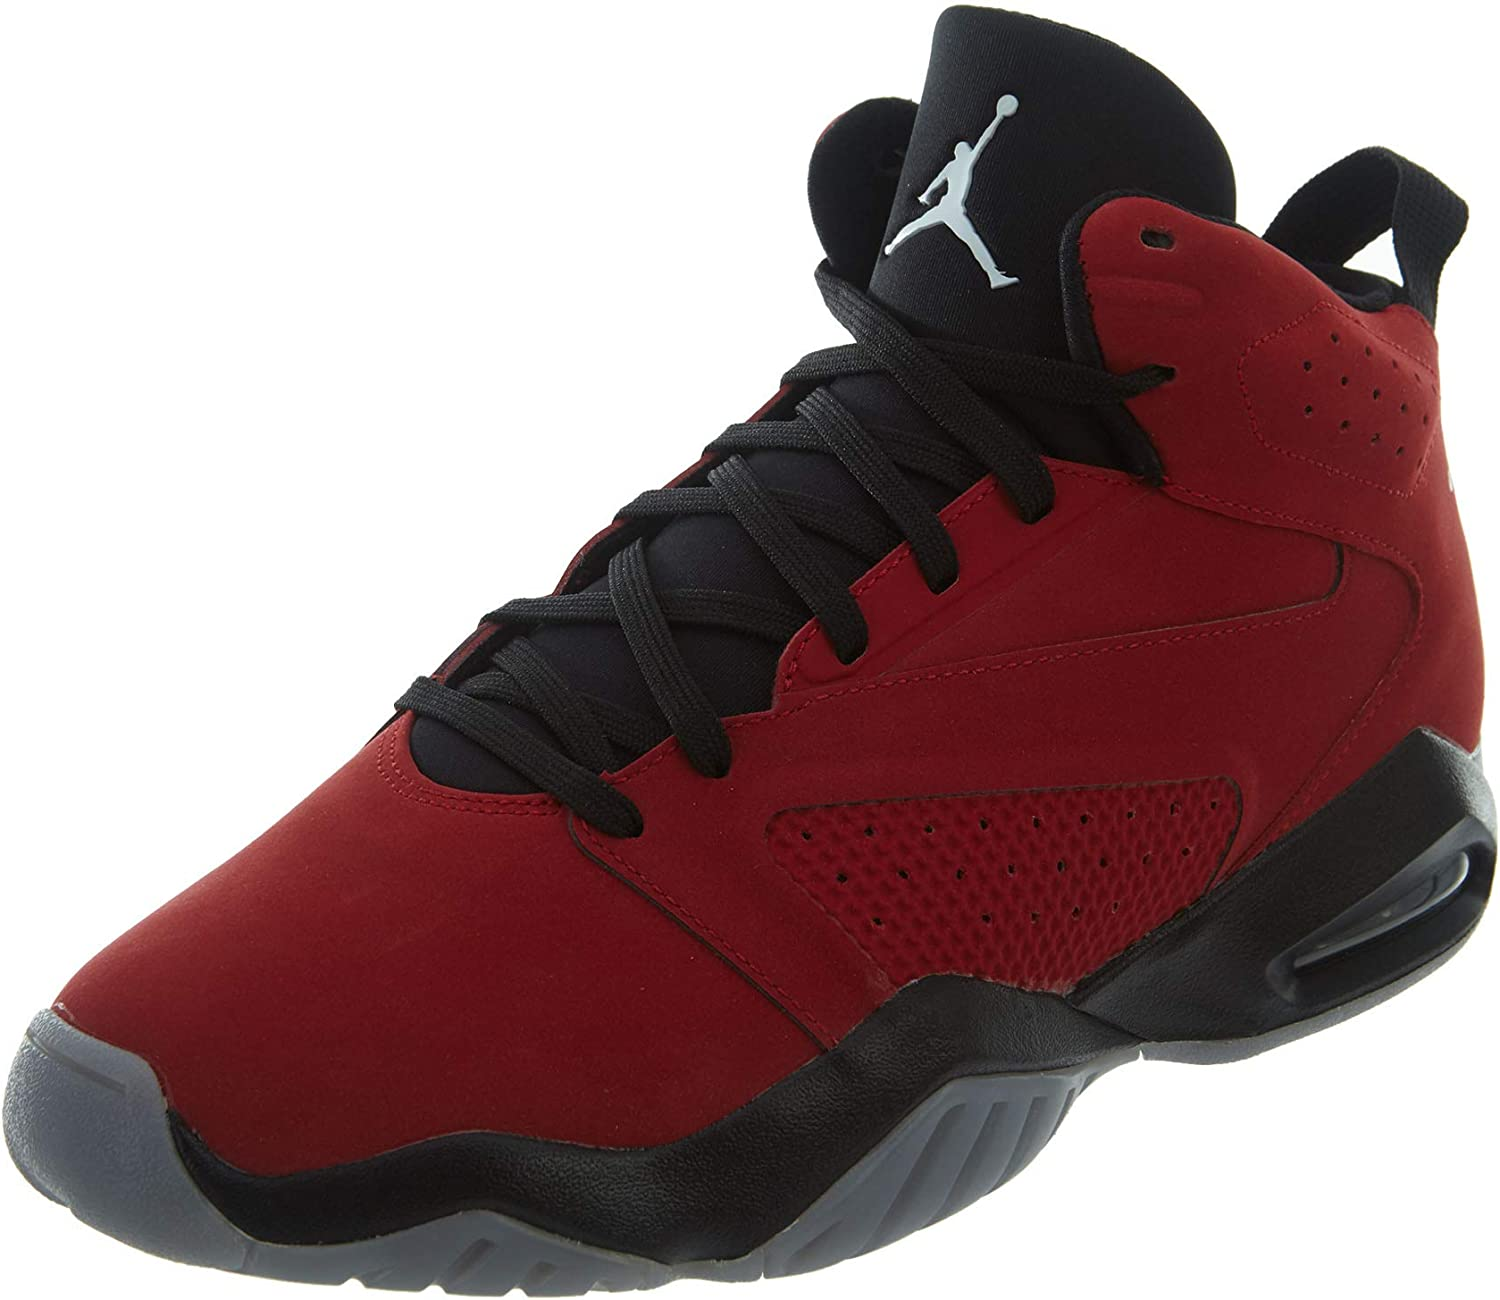 Nike Jordan Mens Jordan Lift Off Synthetic Leather Gym Red Black Trainers 8 US